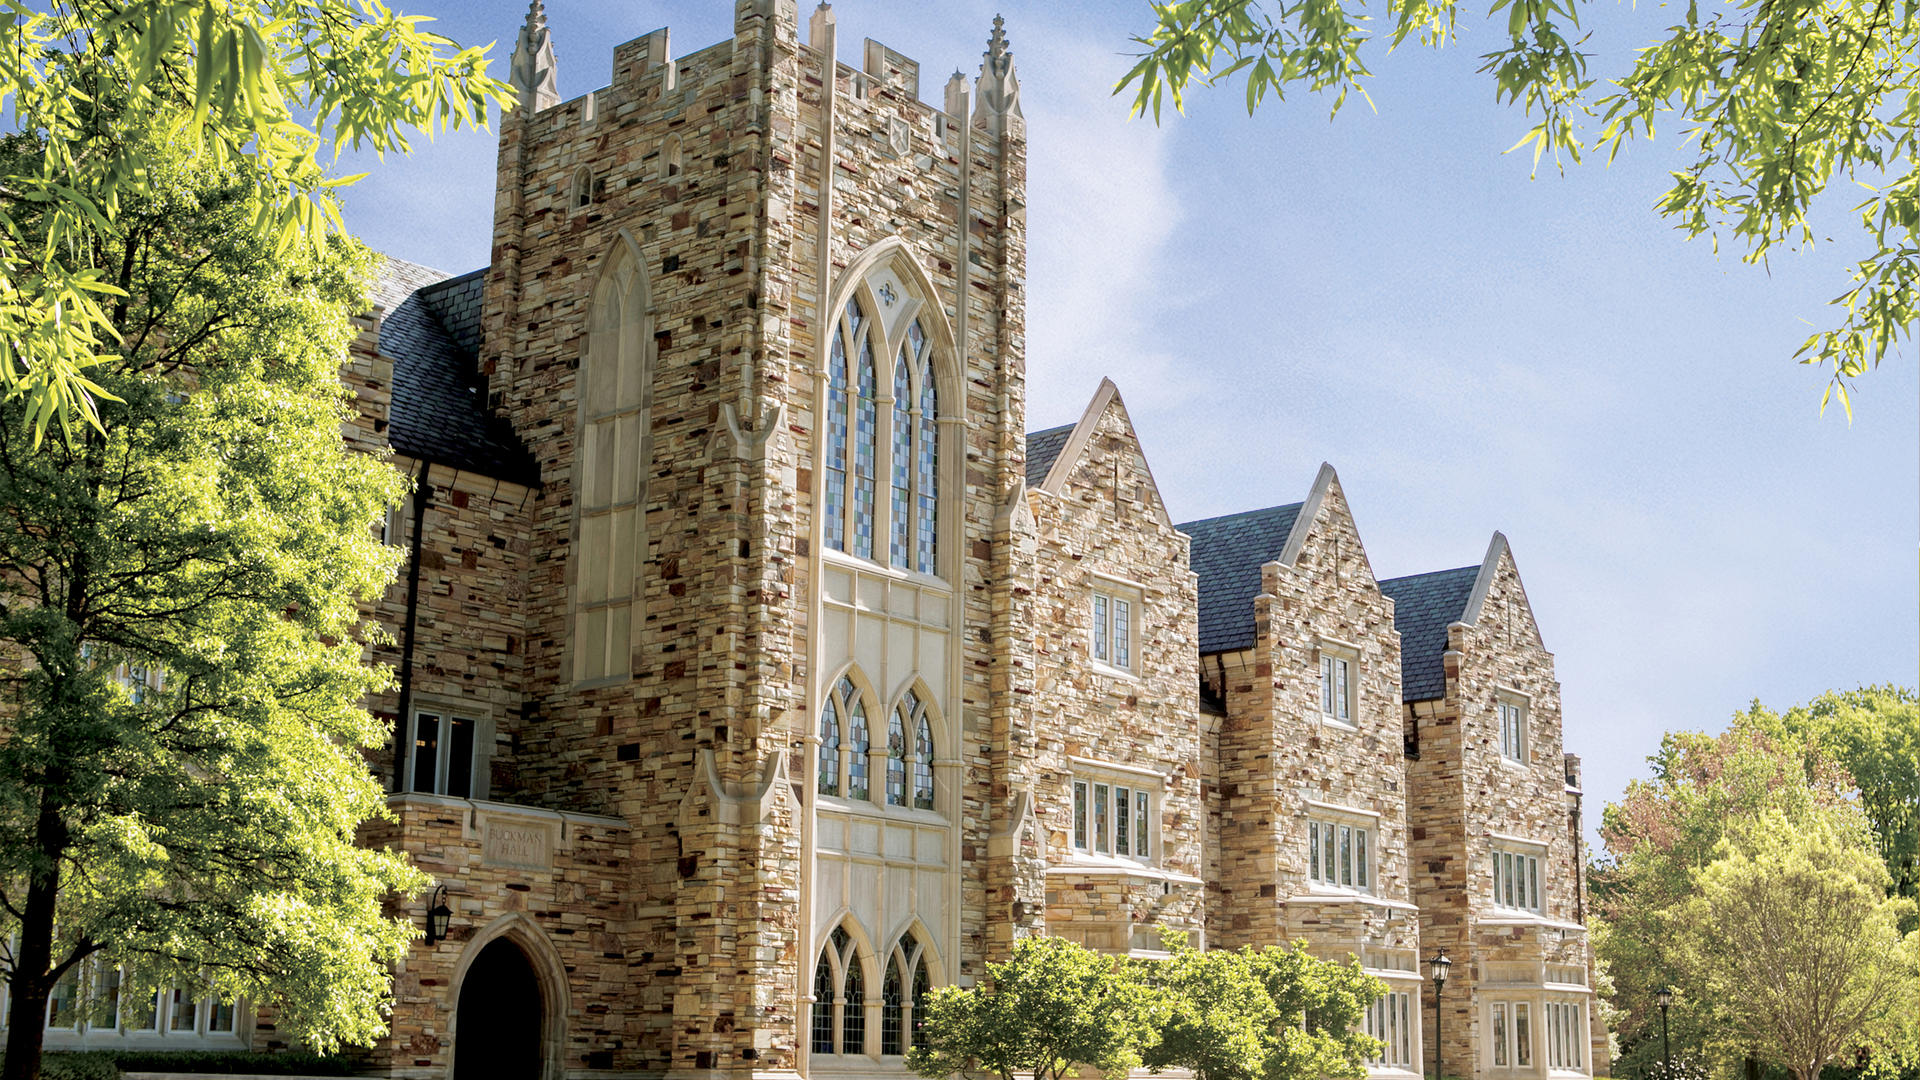 Buckman Hall, a large Gothic stone building